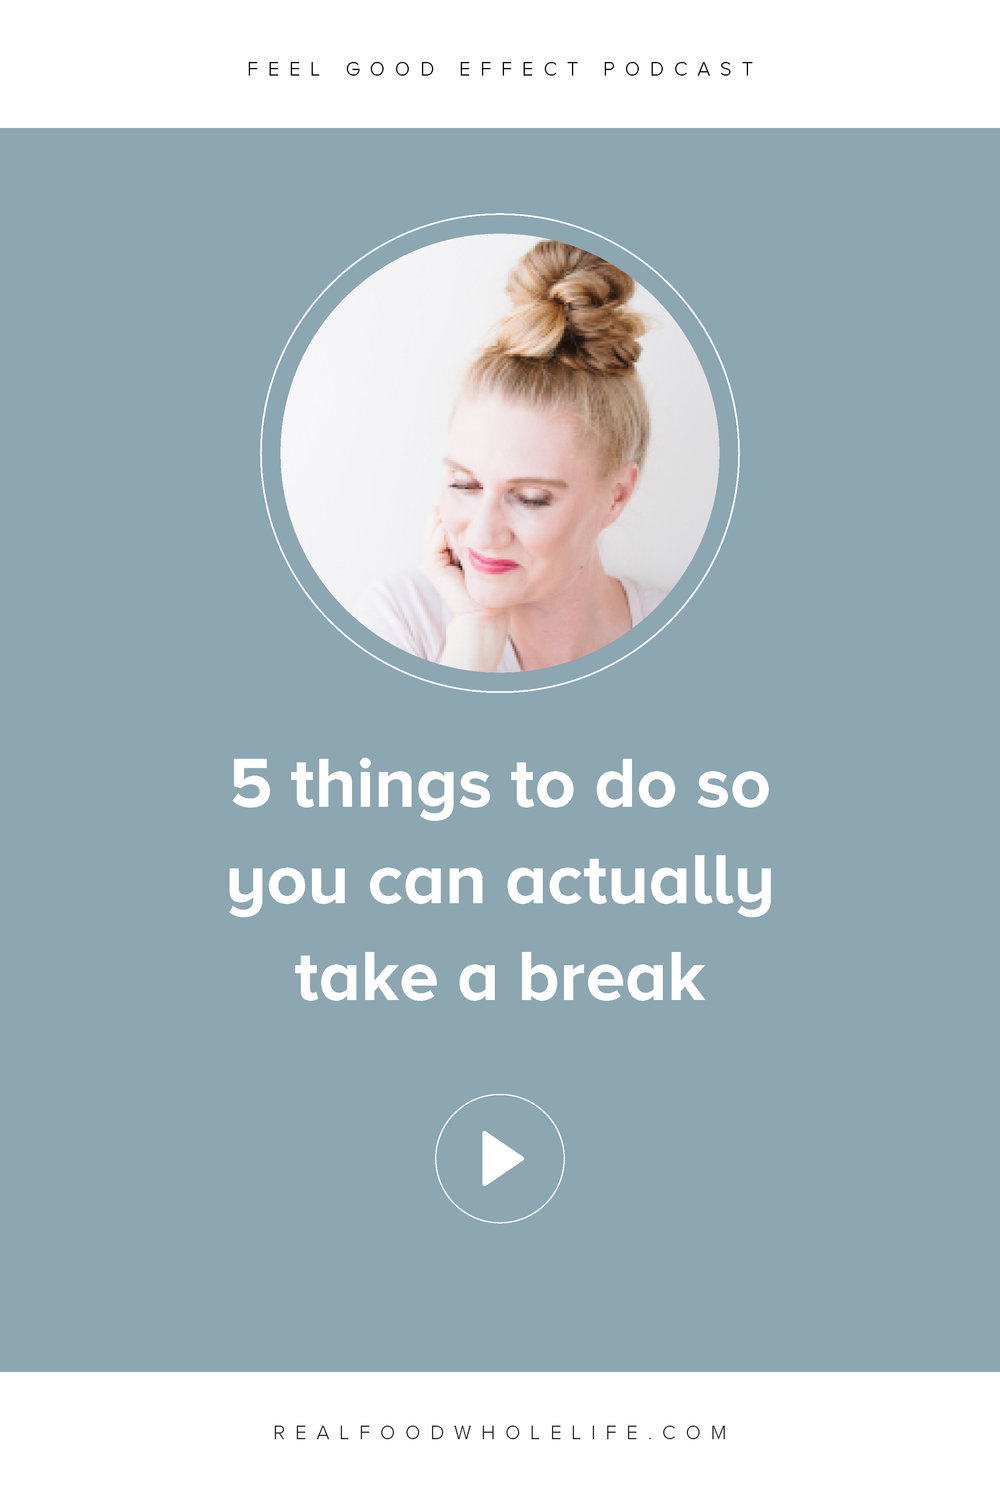 5 Things To Do So You Can Actually Take a Break!